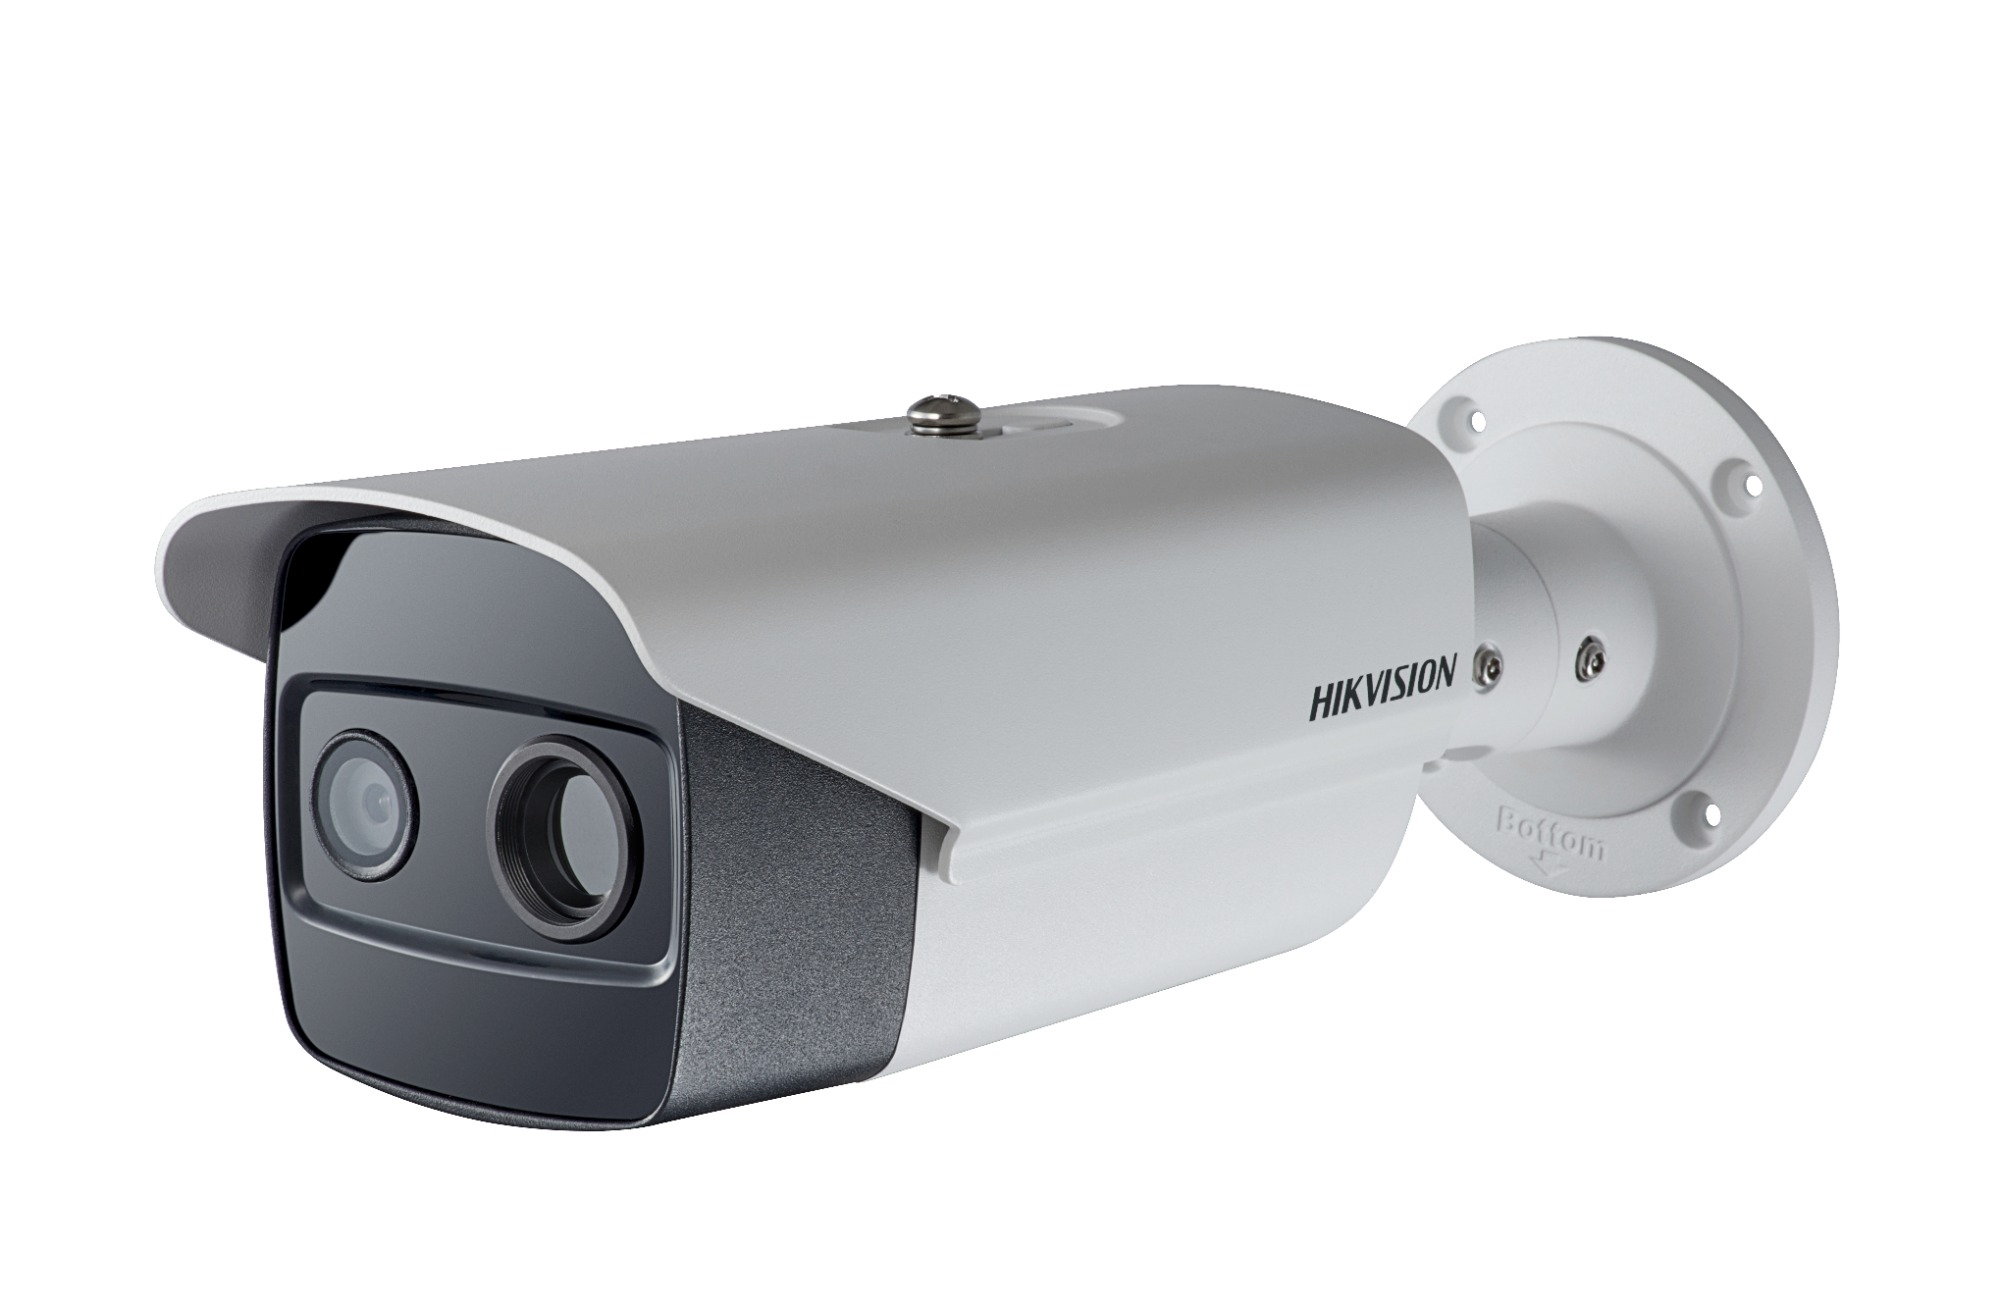 New Thermal Bi-spectrum bullet camera designed to detect fires before they happen